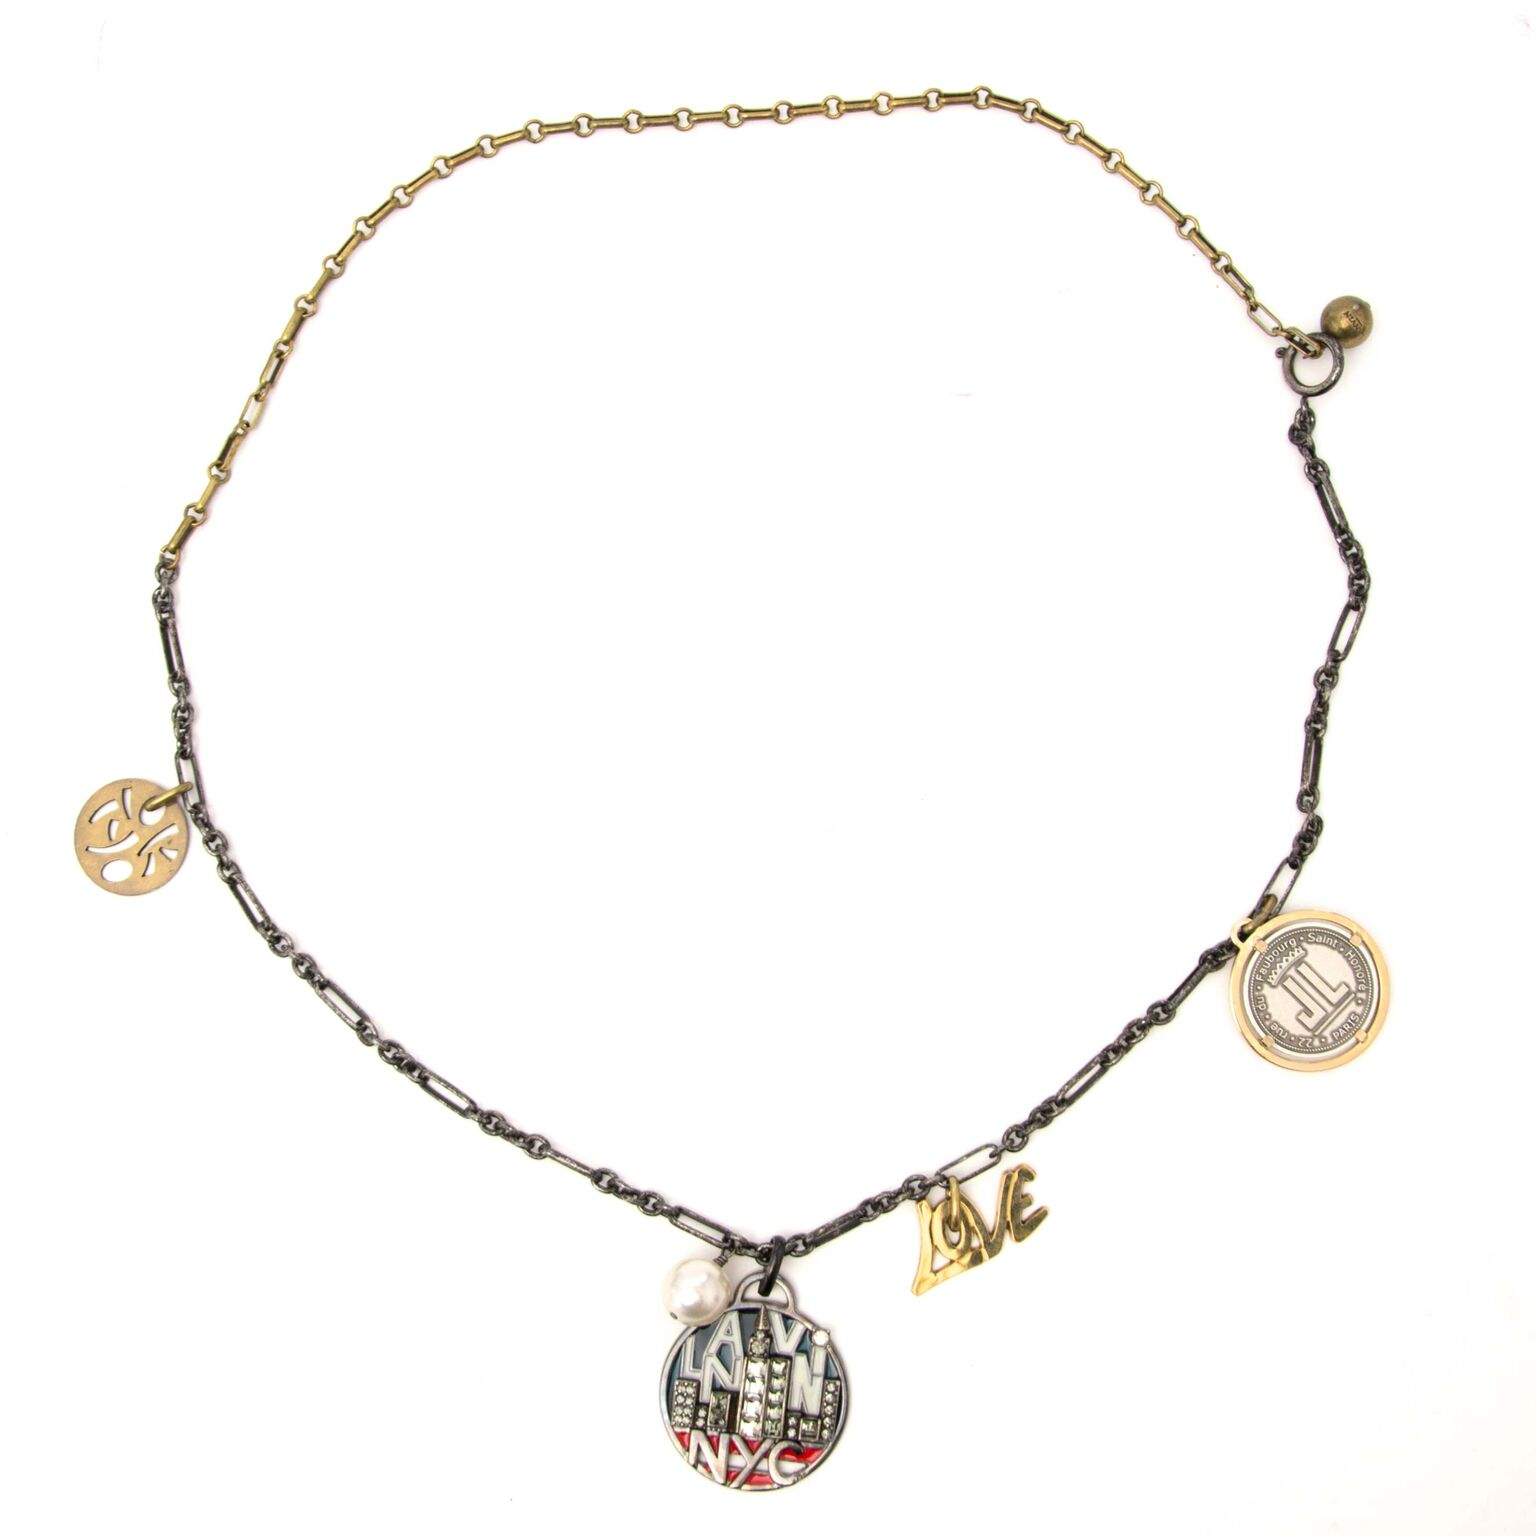 Beautiful Lanvin Necklace now for sale on labellov.com